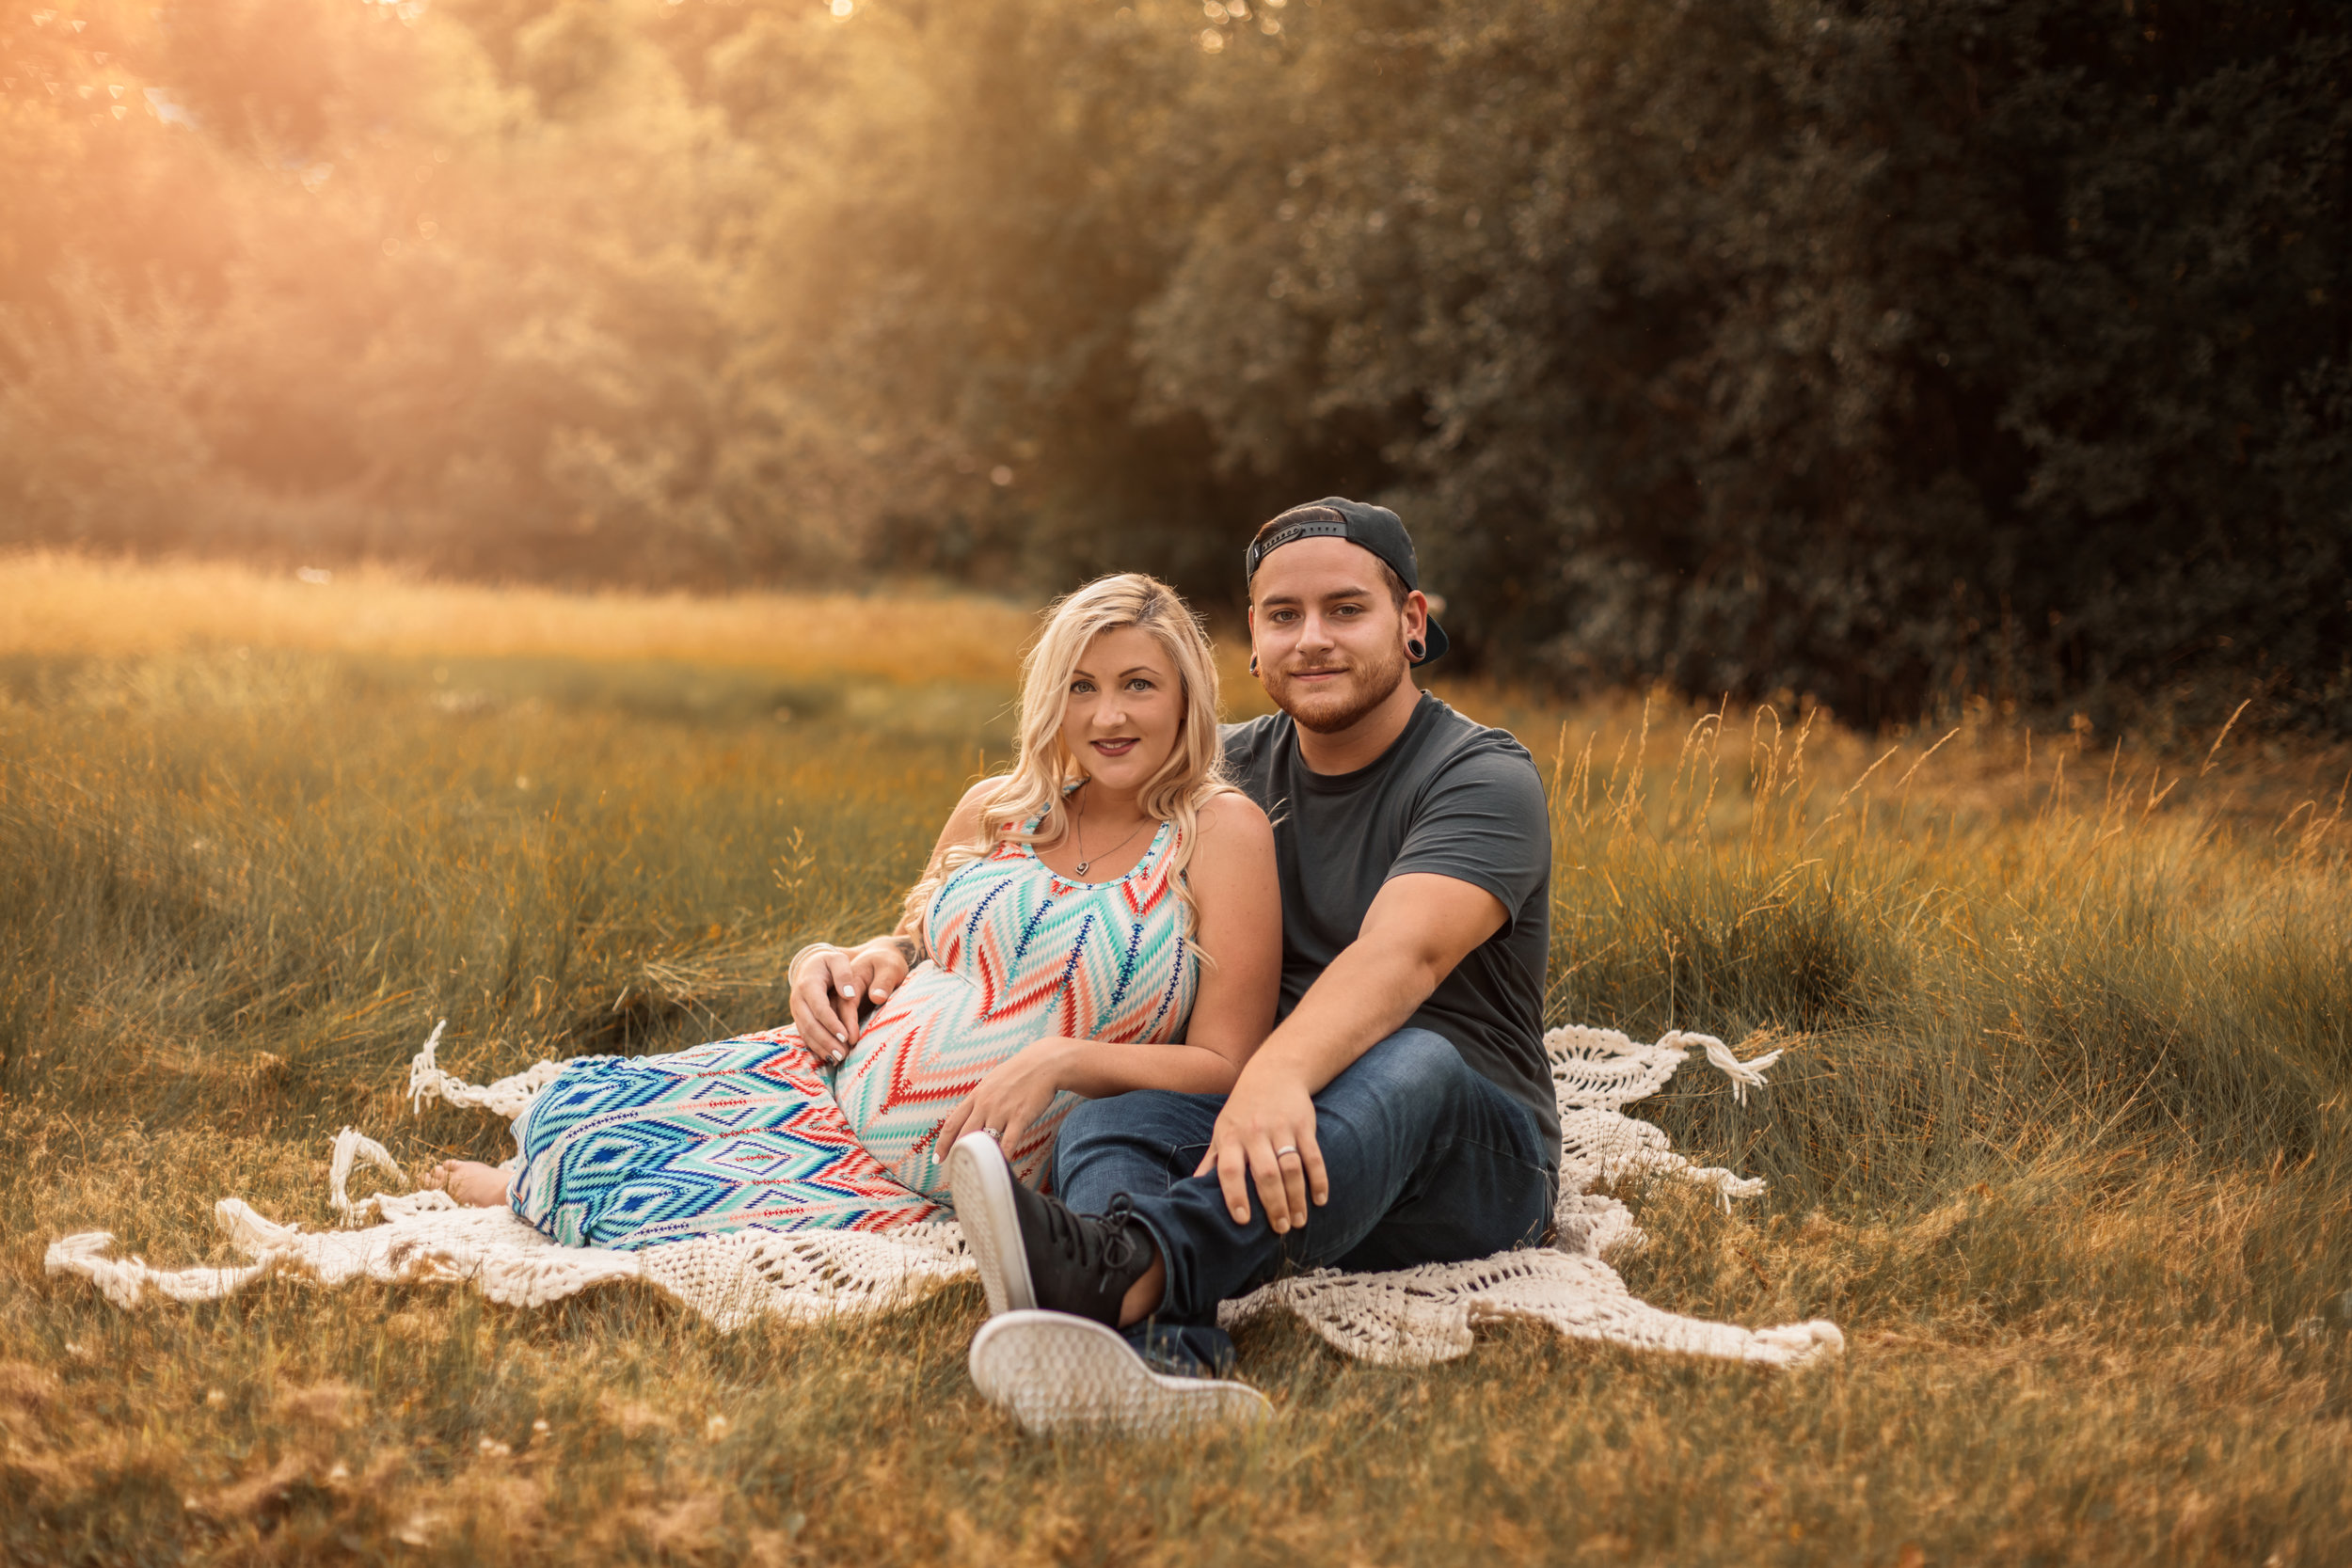 Shannon Revelle Photography, Michigan Maternity Session at Elizabeth Park, Trenton